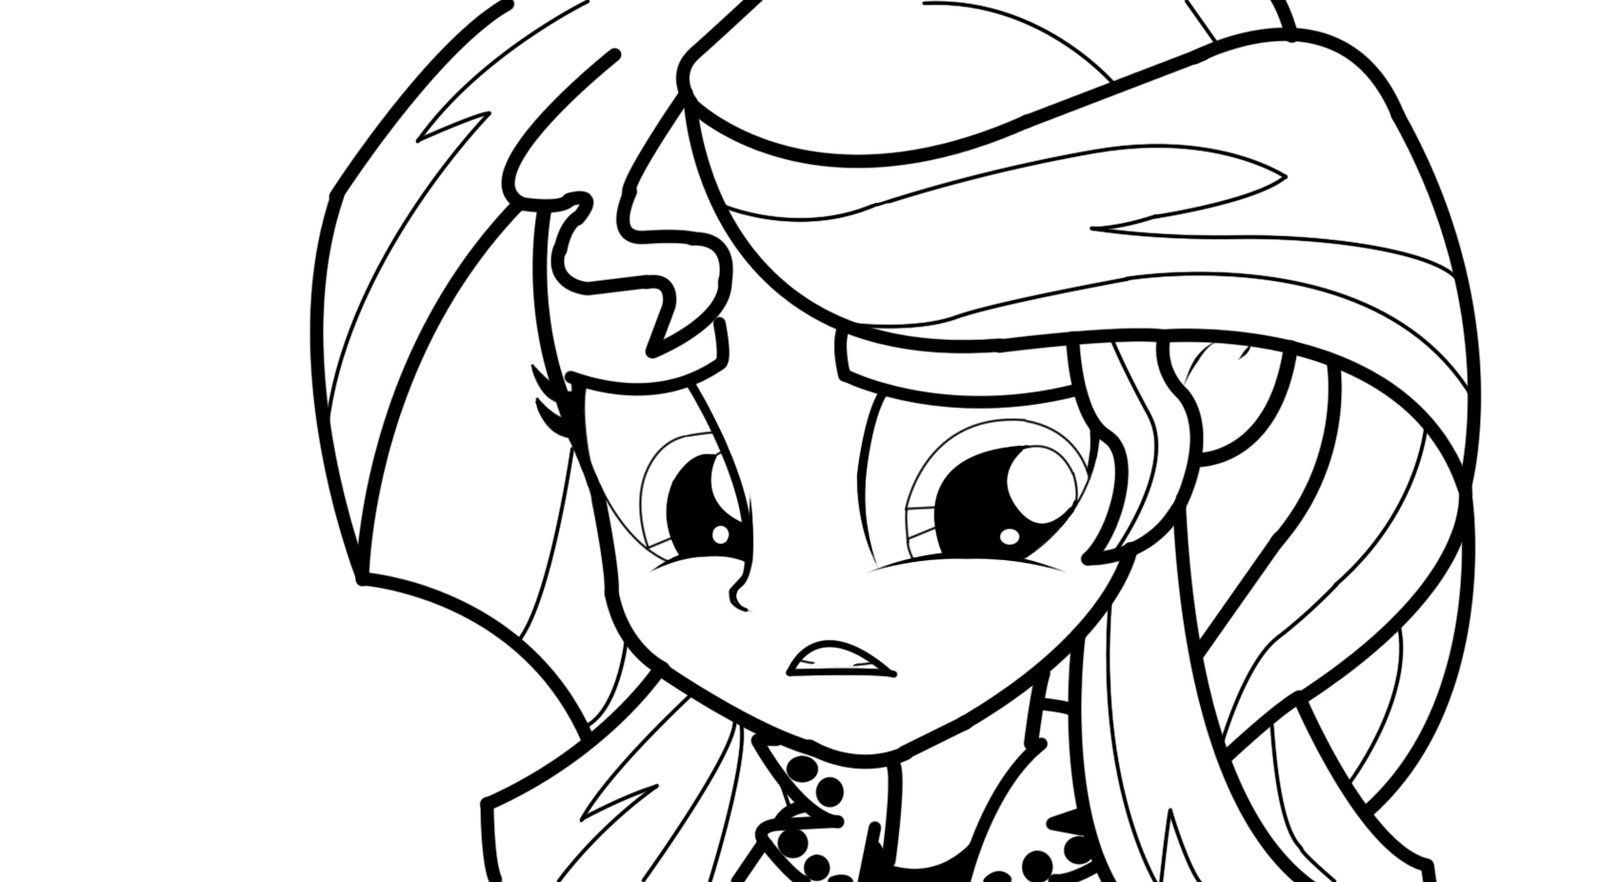 Mlp My Little Pony Equestria Girls Coloring Book Sunset Shimmer